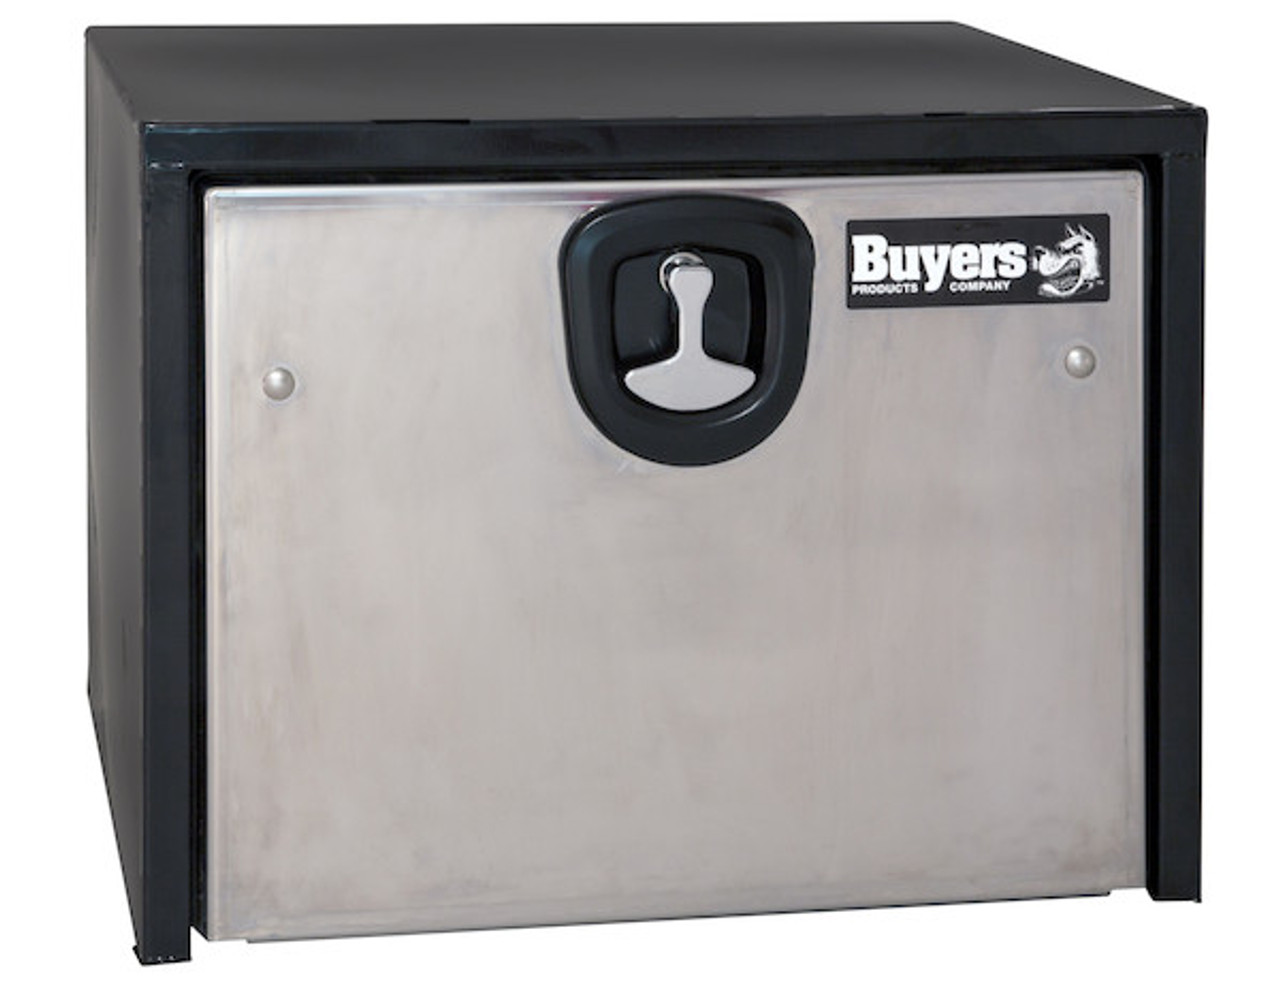 1703700 BUYERS PRODUCTS BLACK STEEL UNDERBODY TRUCK BOX WITH STAINLESS STEEL DOOR TOOLBOX